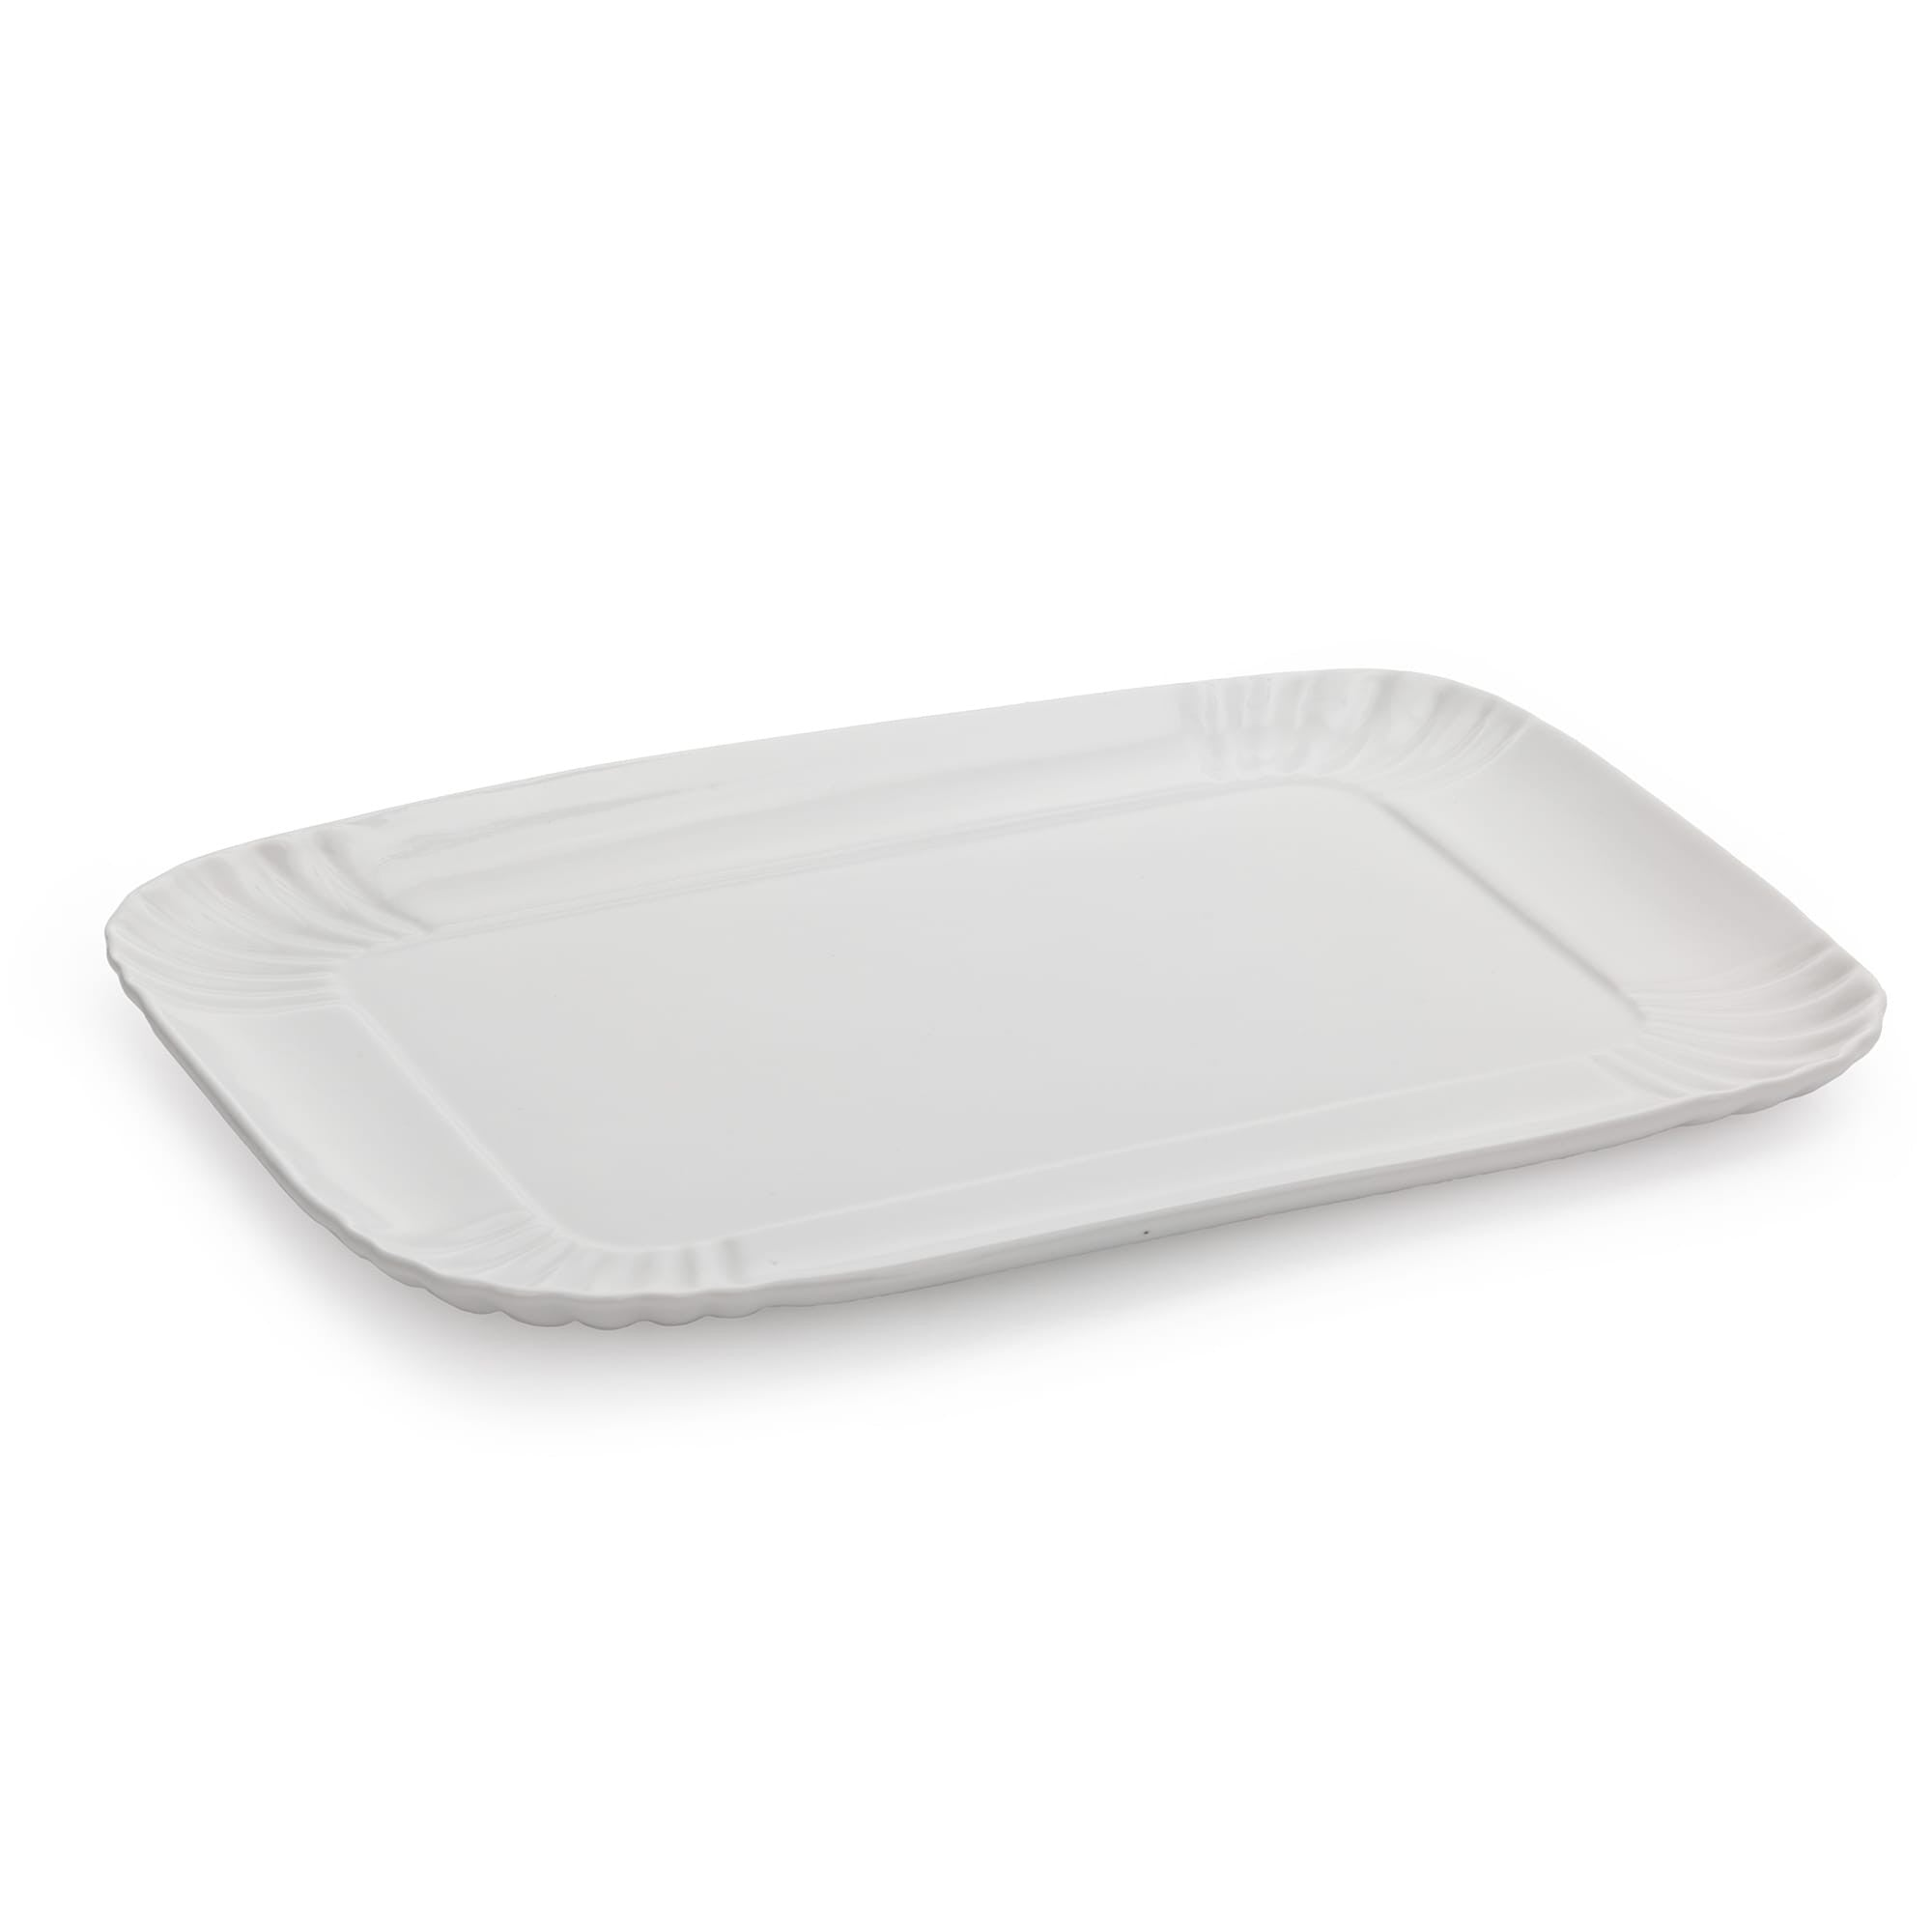 Estetico Quotidiano The Large Tray design by Seletti